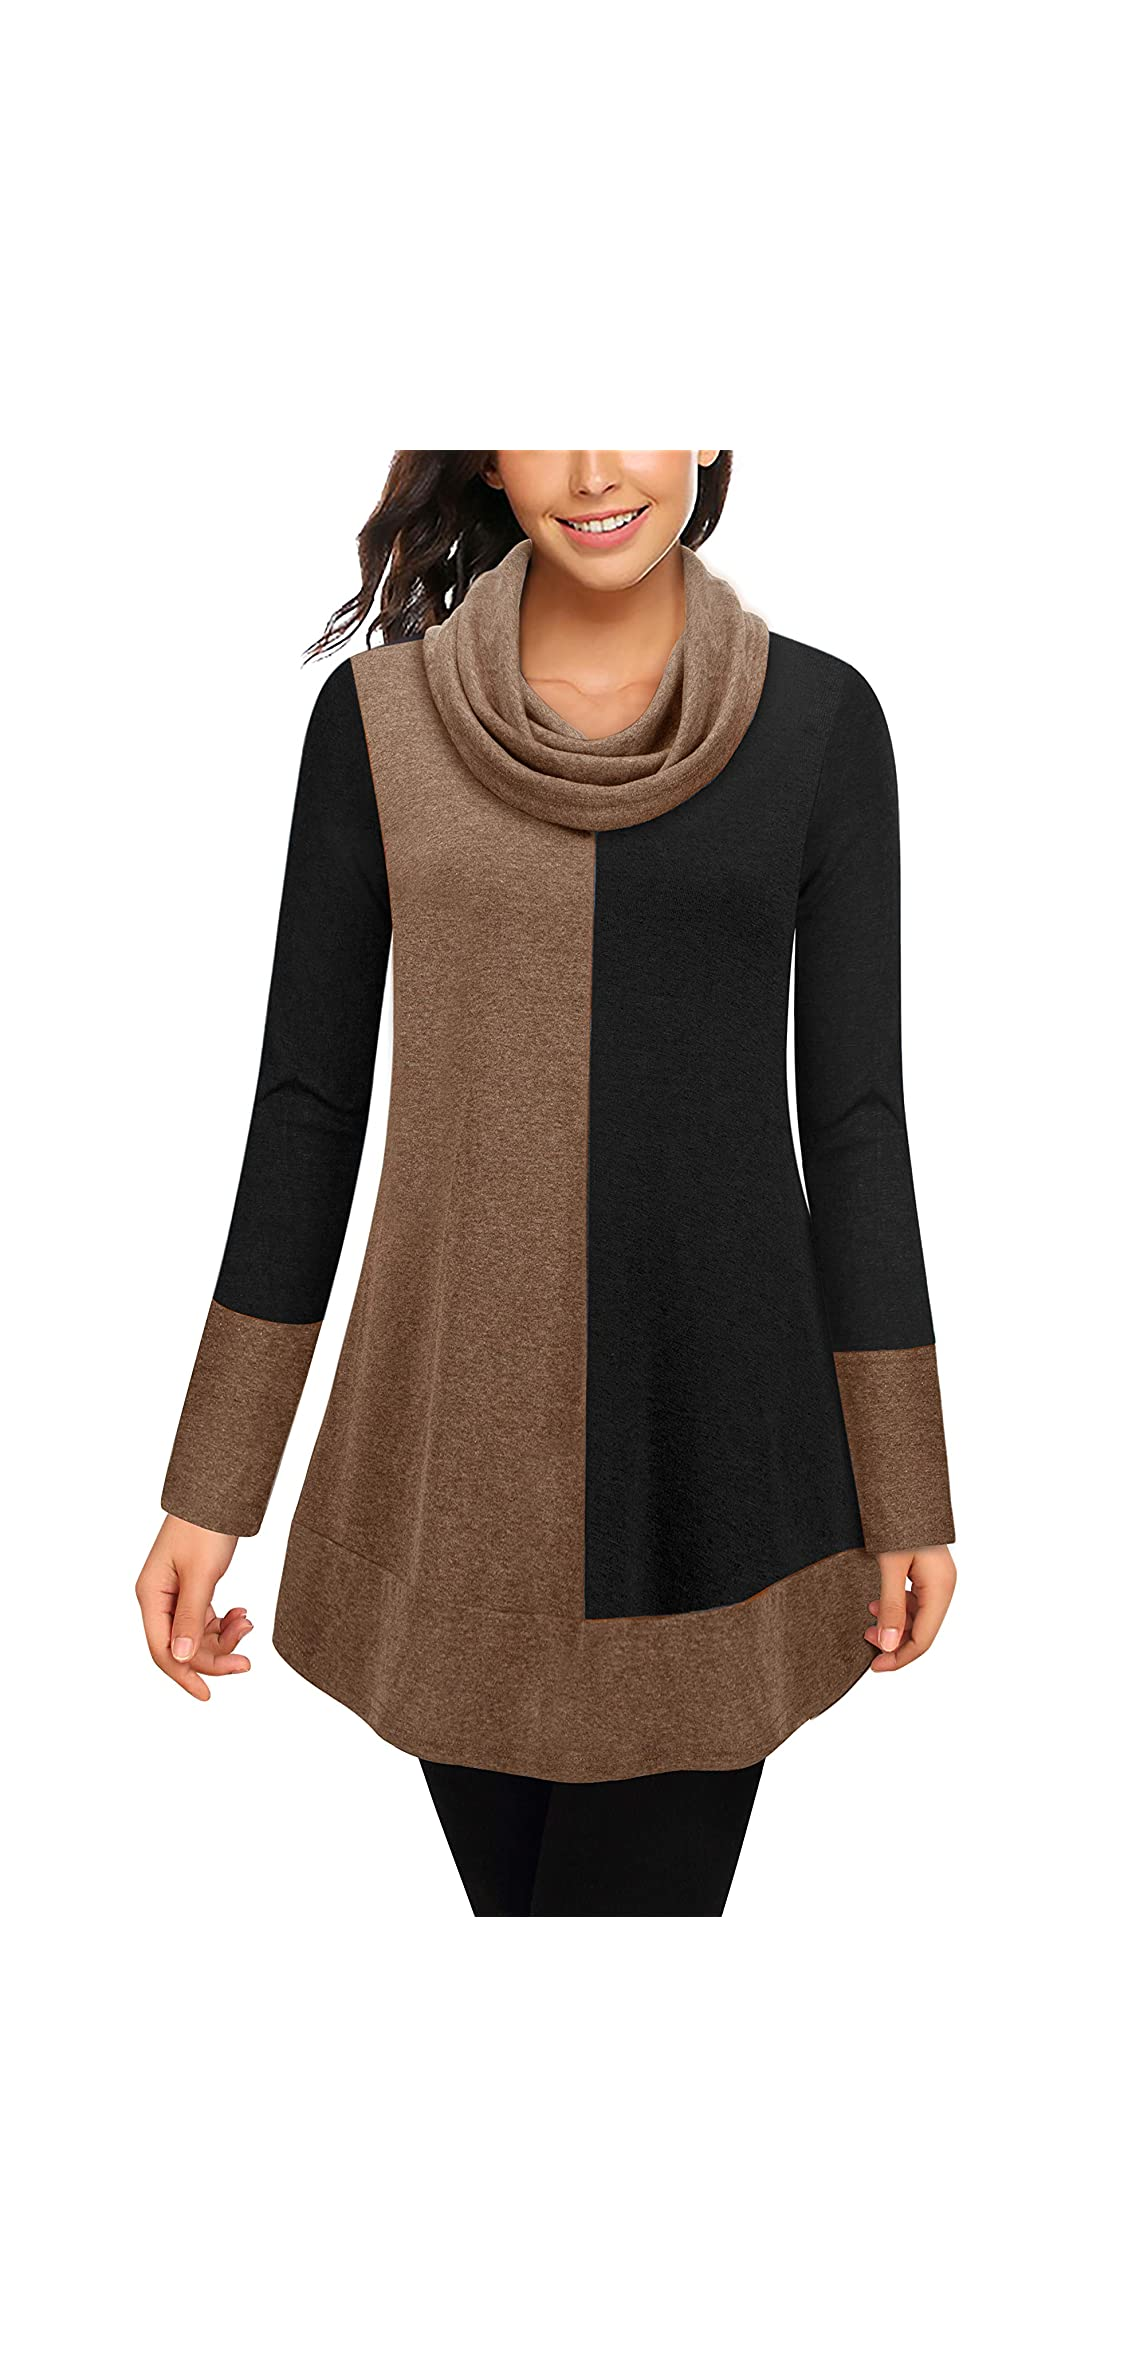 Women's Cowl Neck Long Sleeve Splicing Hoodie Pullover